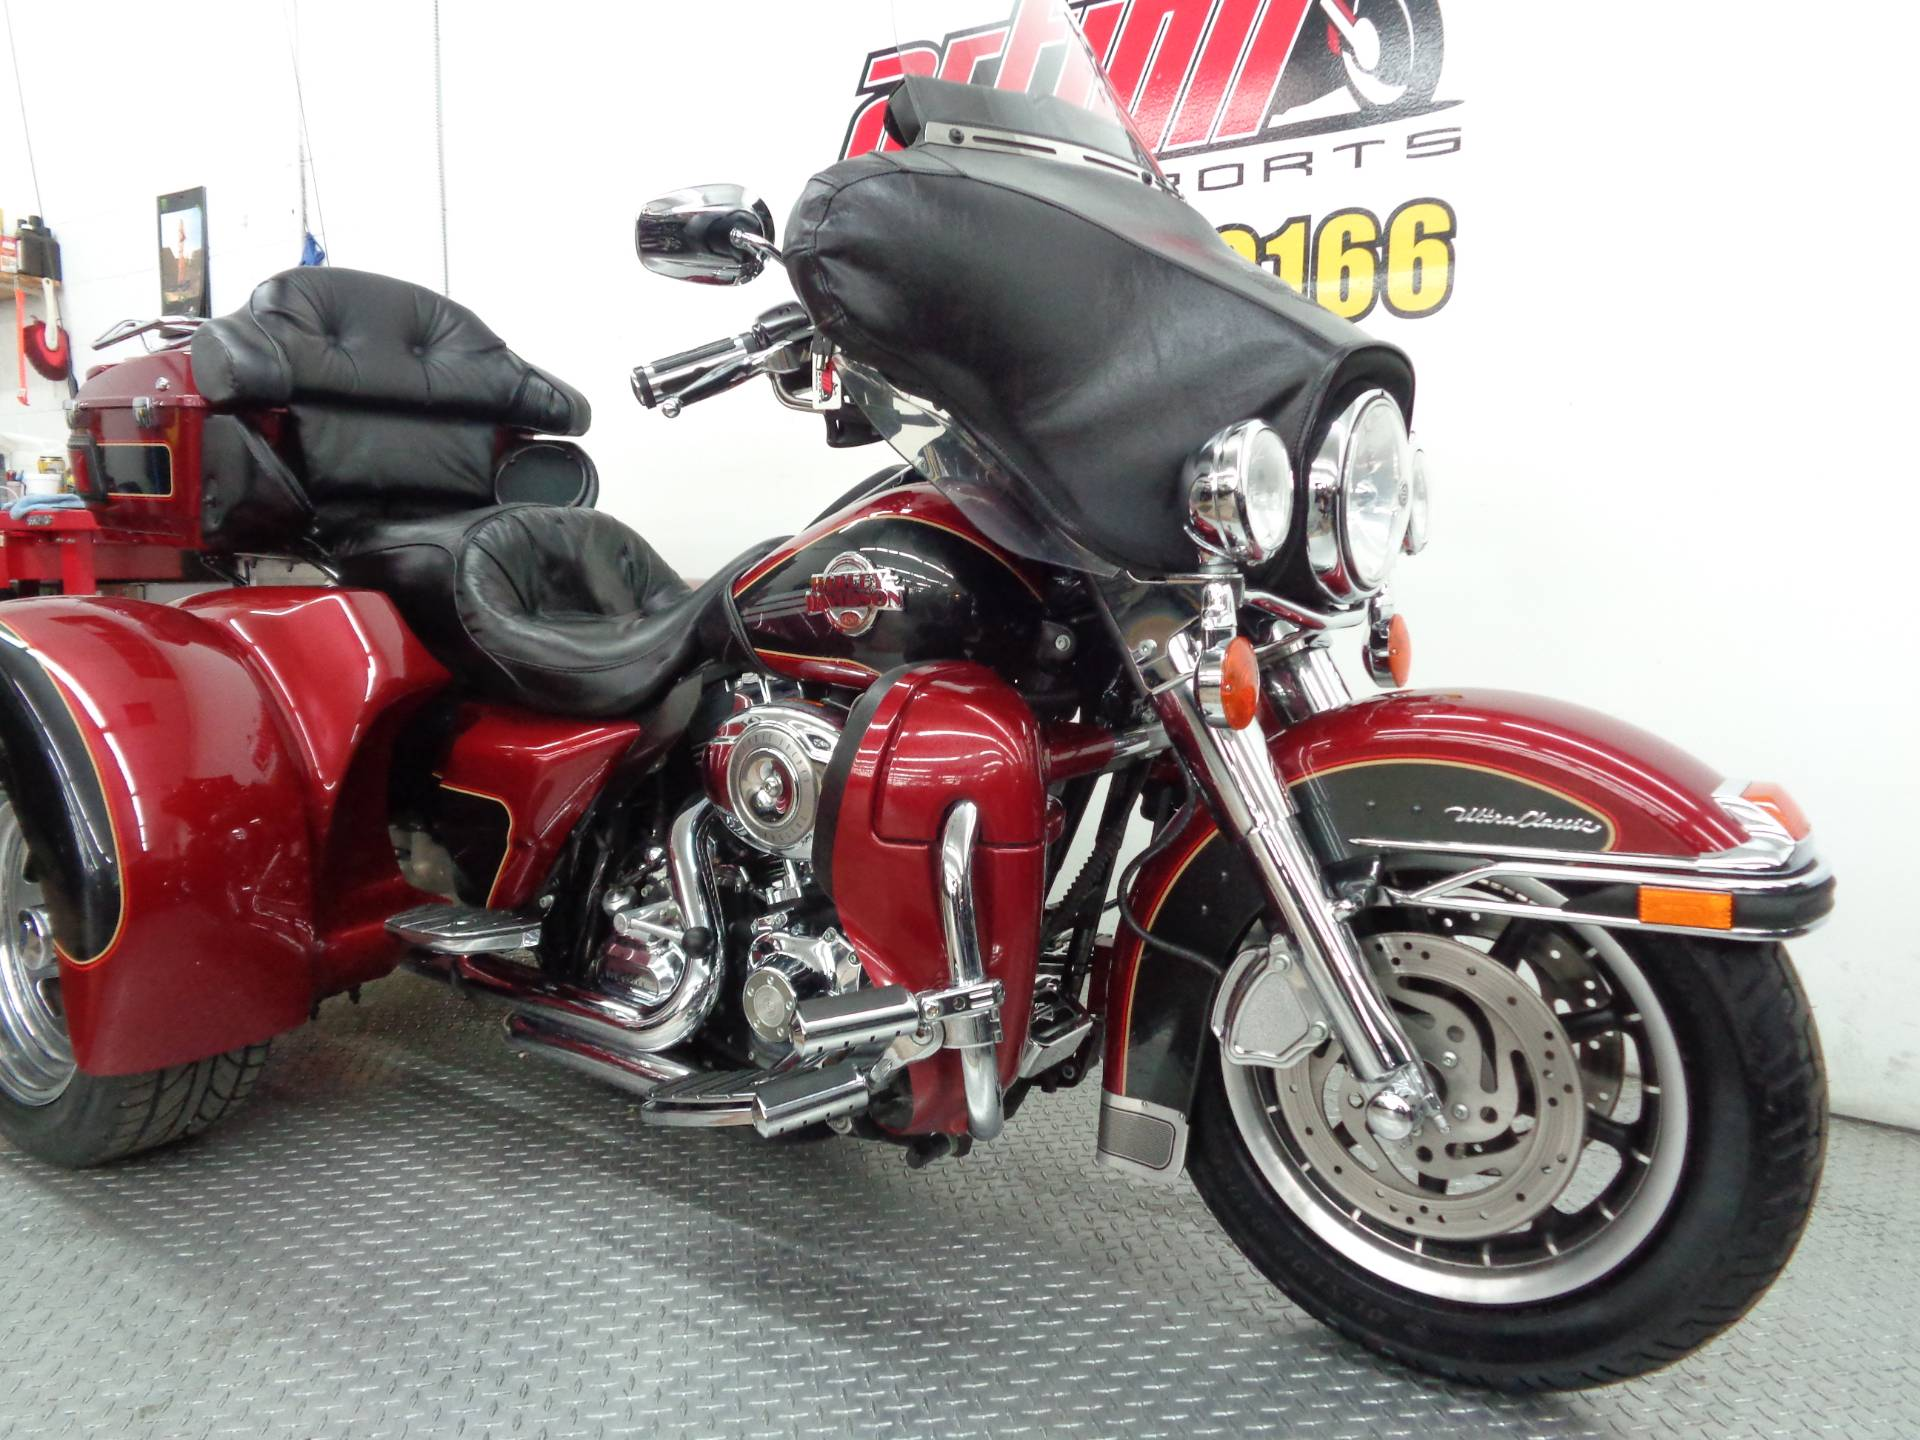 2007 Harley-Davidson Ultra Classic in Tulsa, Oklahoma - Photo 3